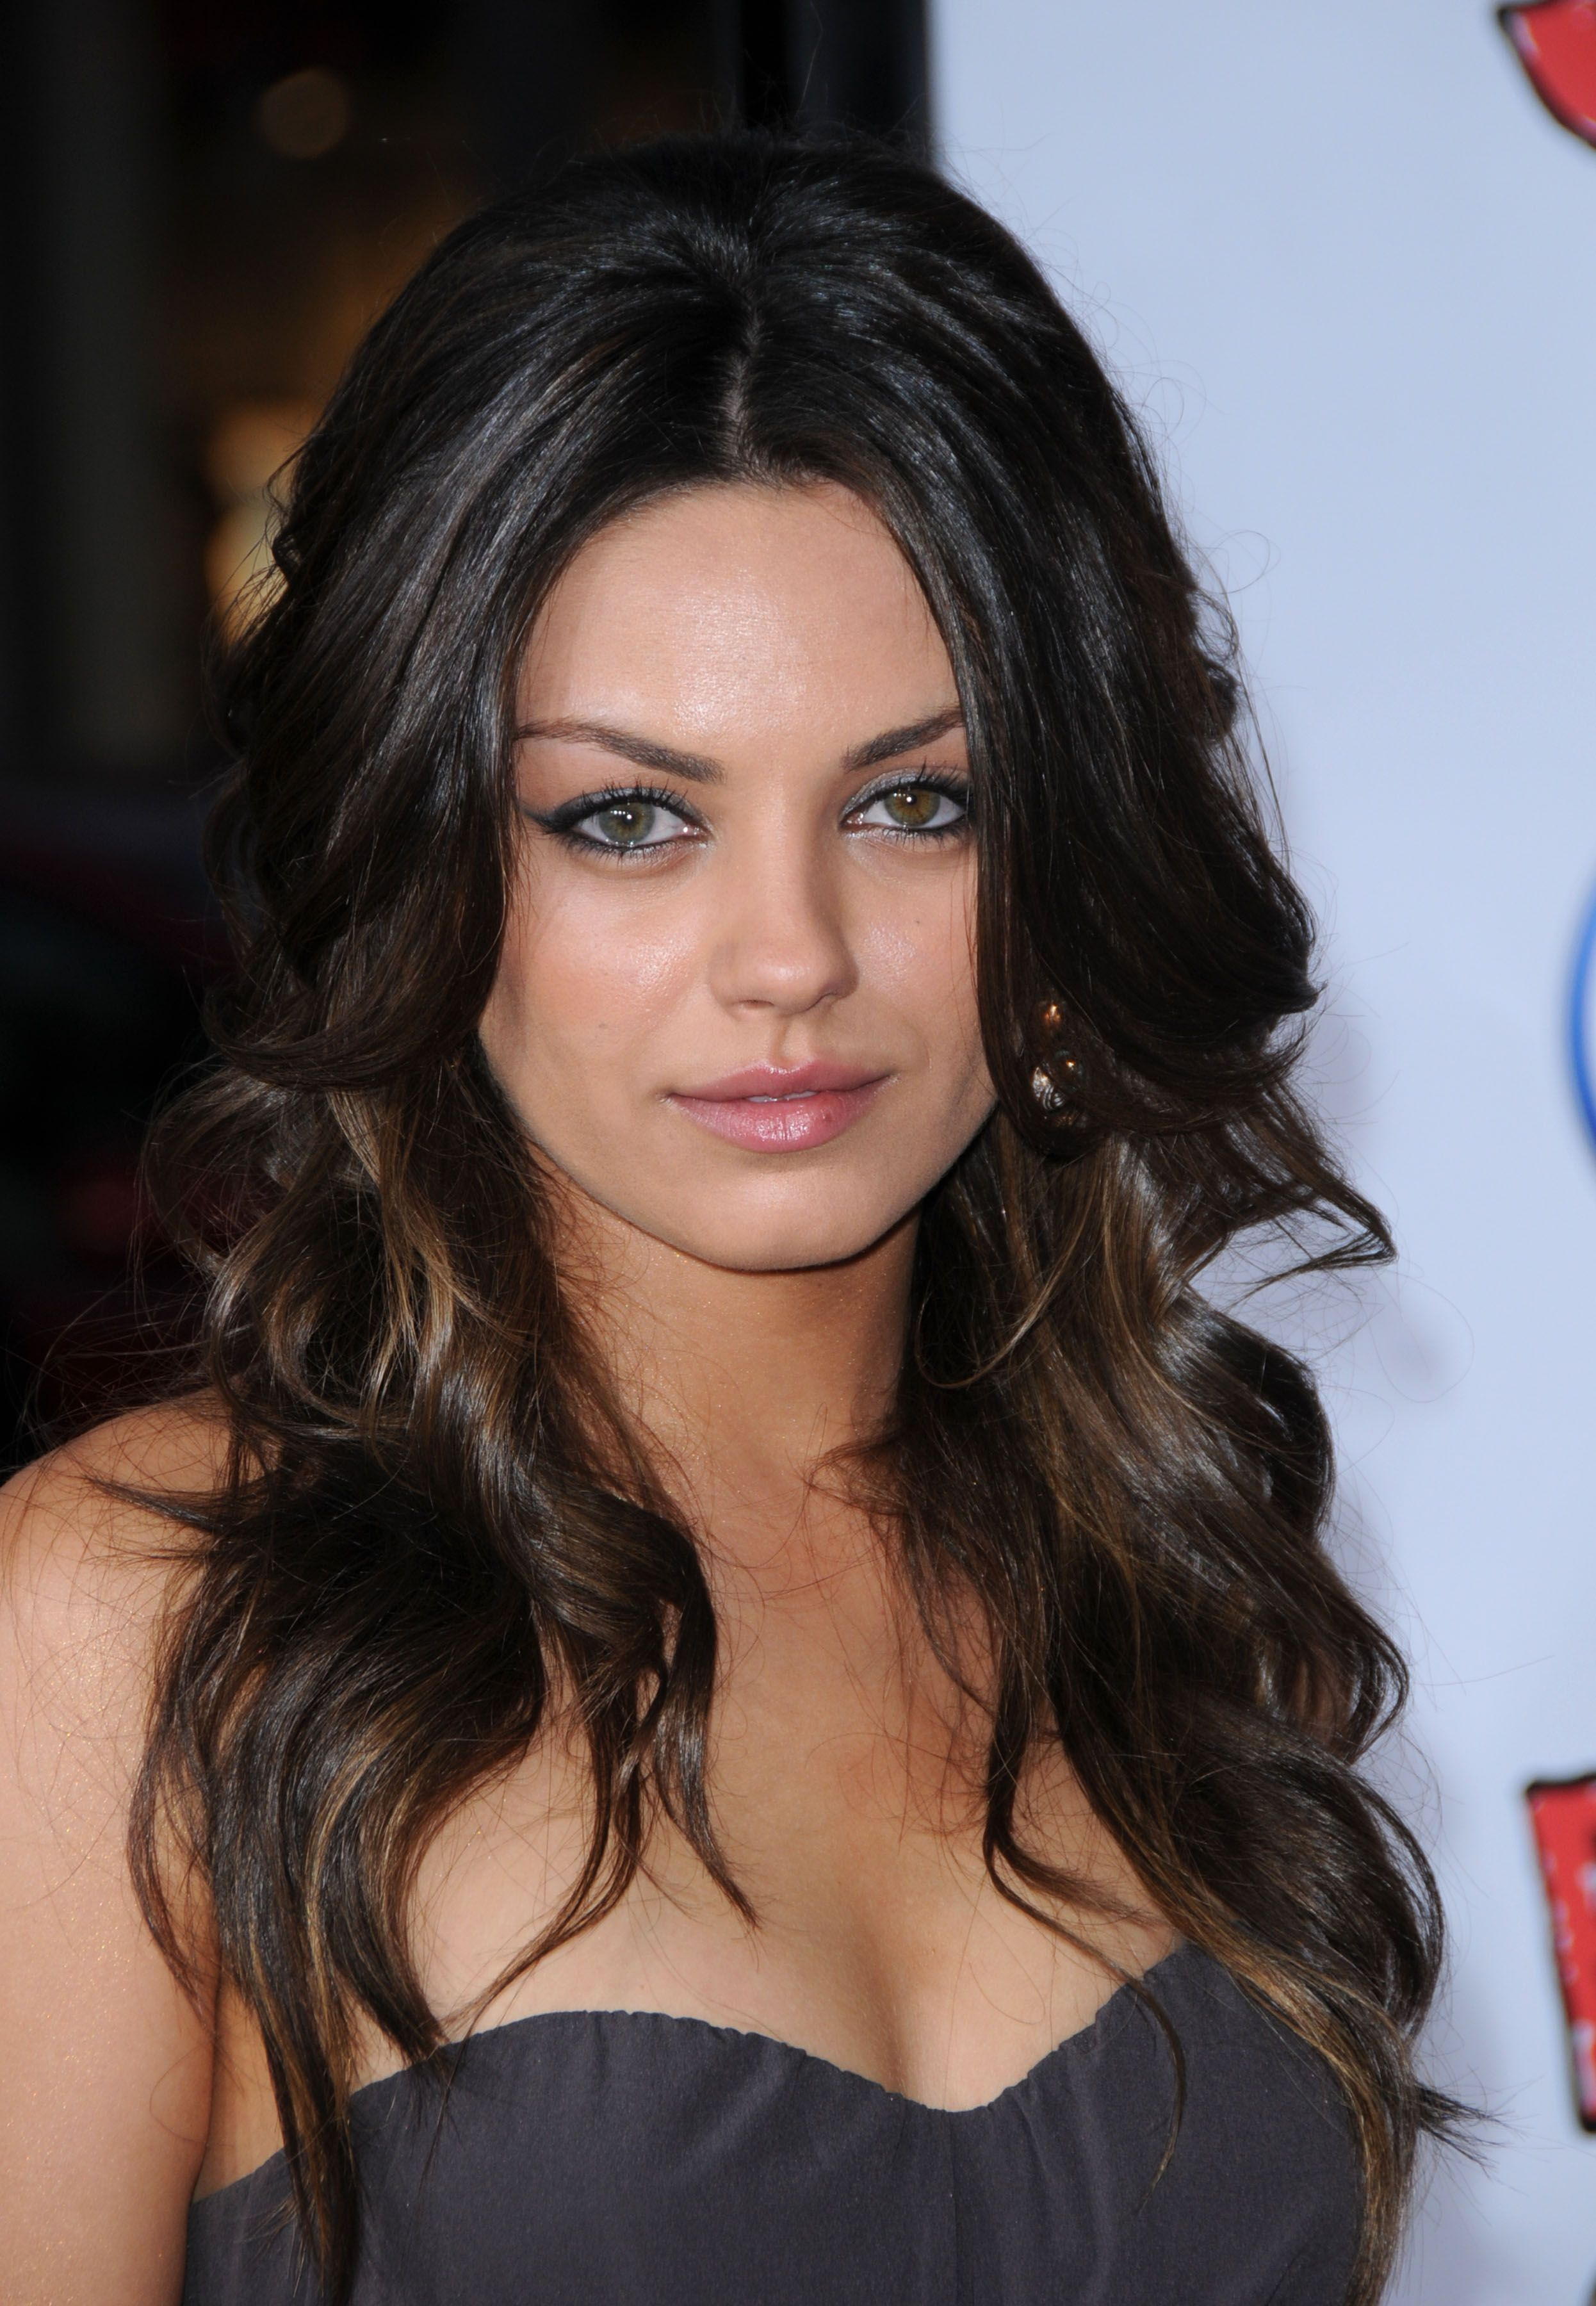 Mila Kunis At Premiere For Forgetting Sarah Marshall In La